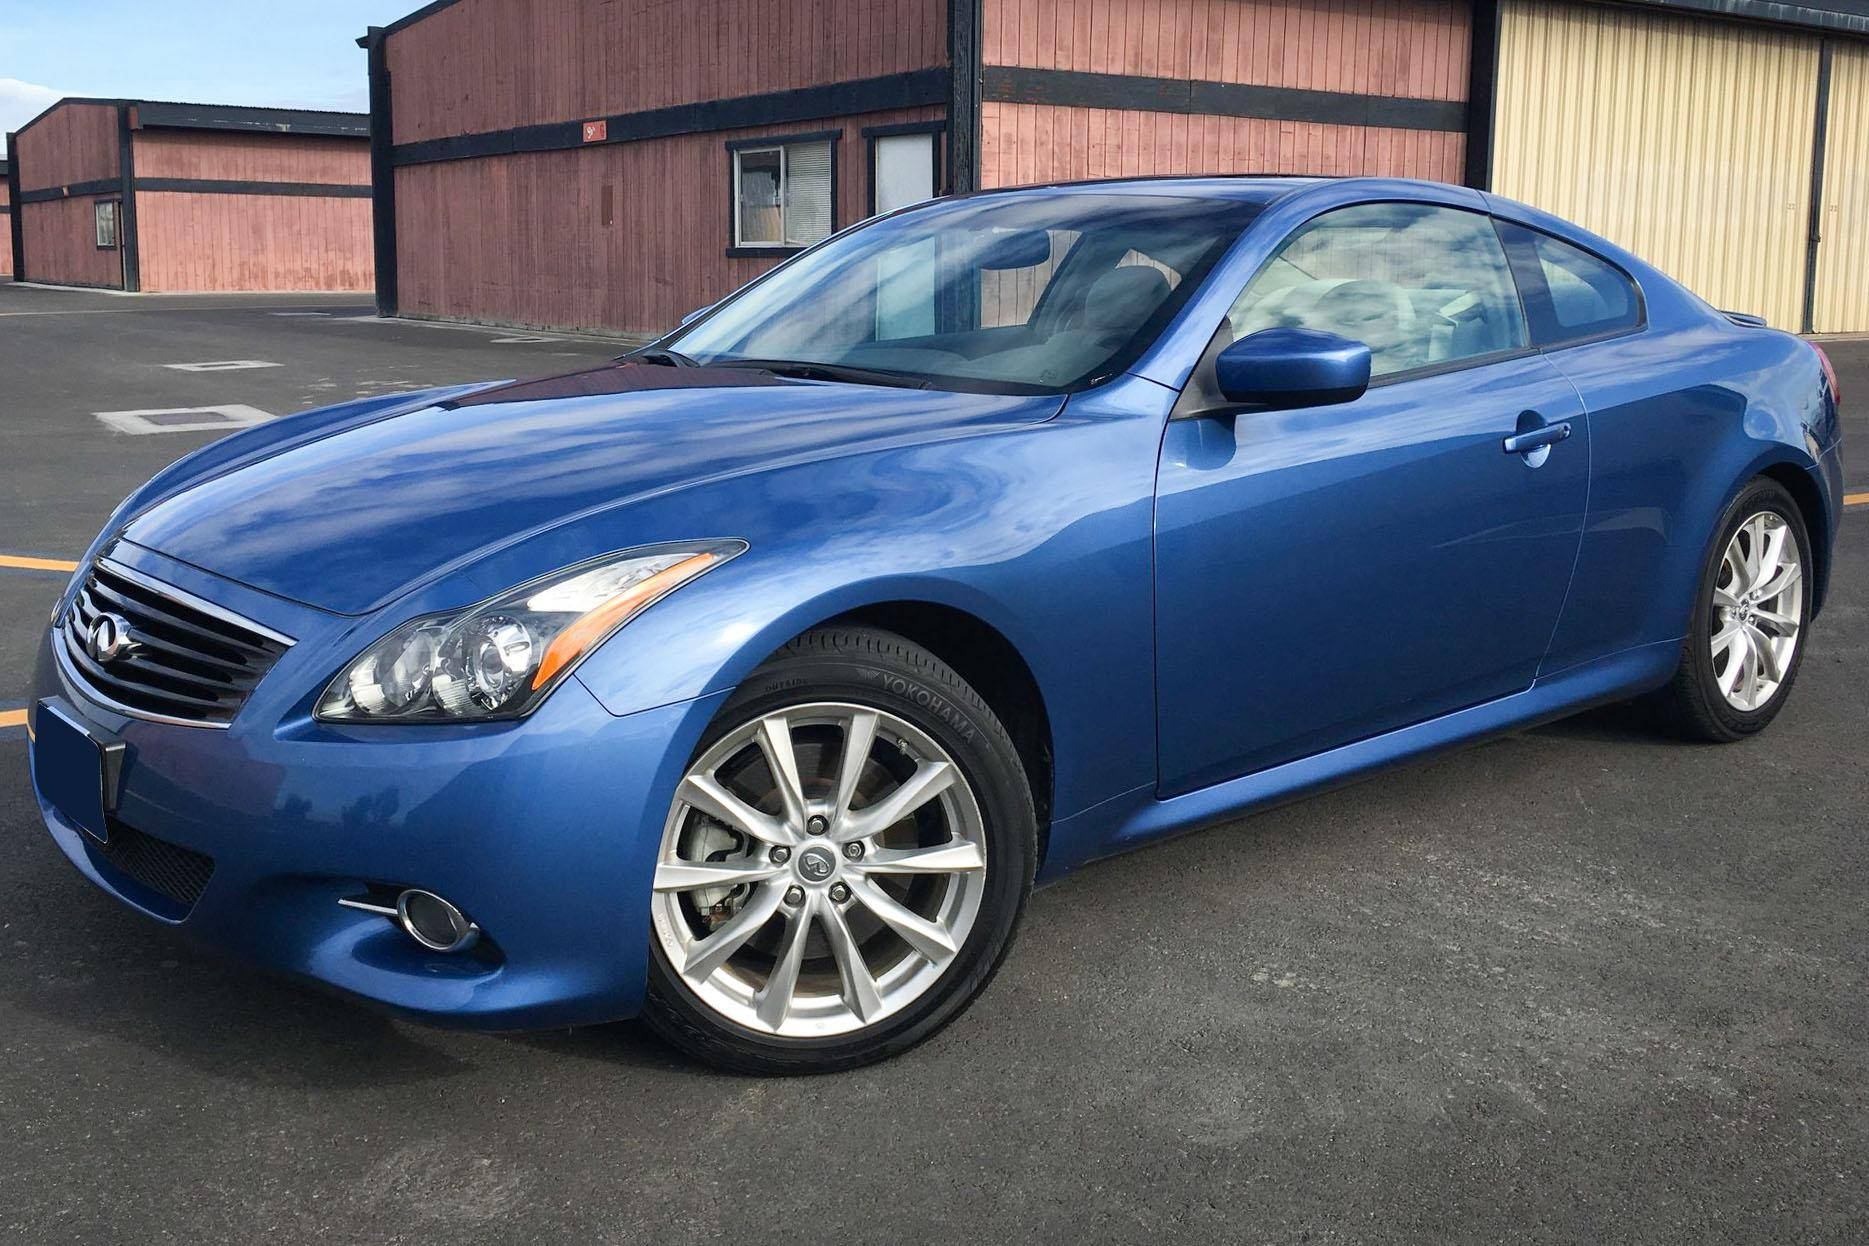 2012 Infiniti G37 Coupe Auction Cars Bids